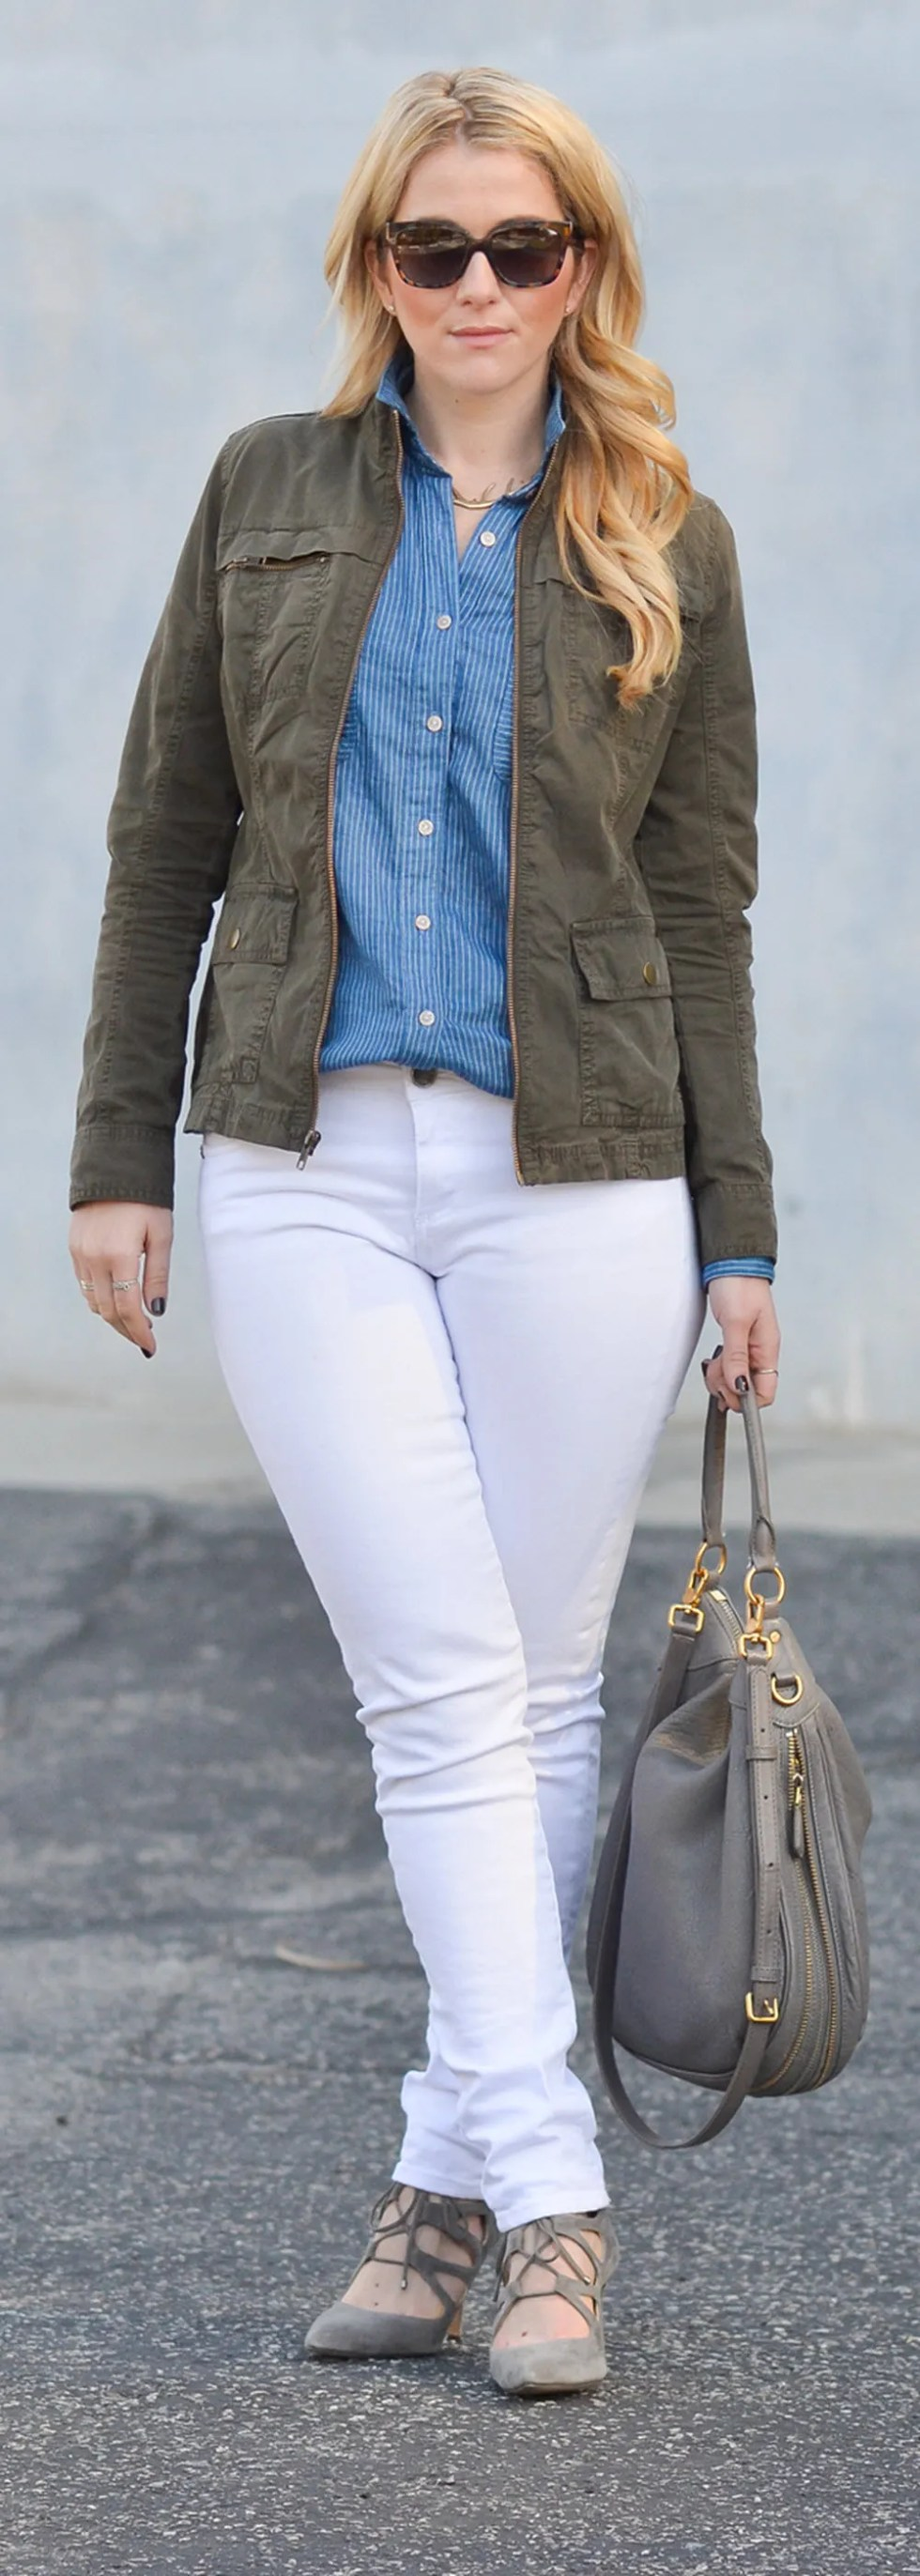 Olive Green Military Jacket Outfit Ideas w. Dark + Light Jeans | Fall Fashion for Women over 30